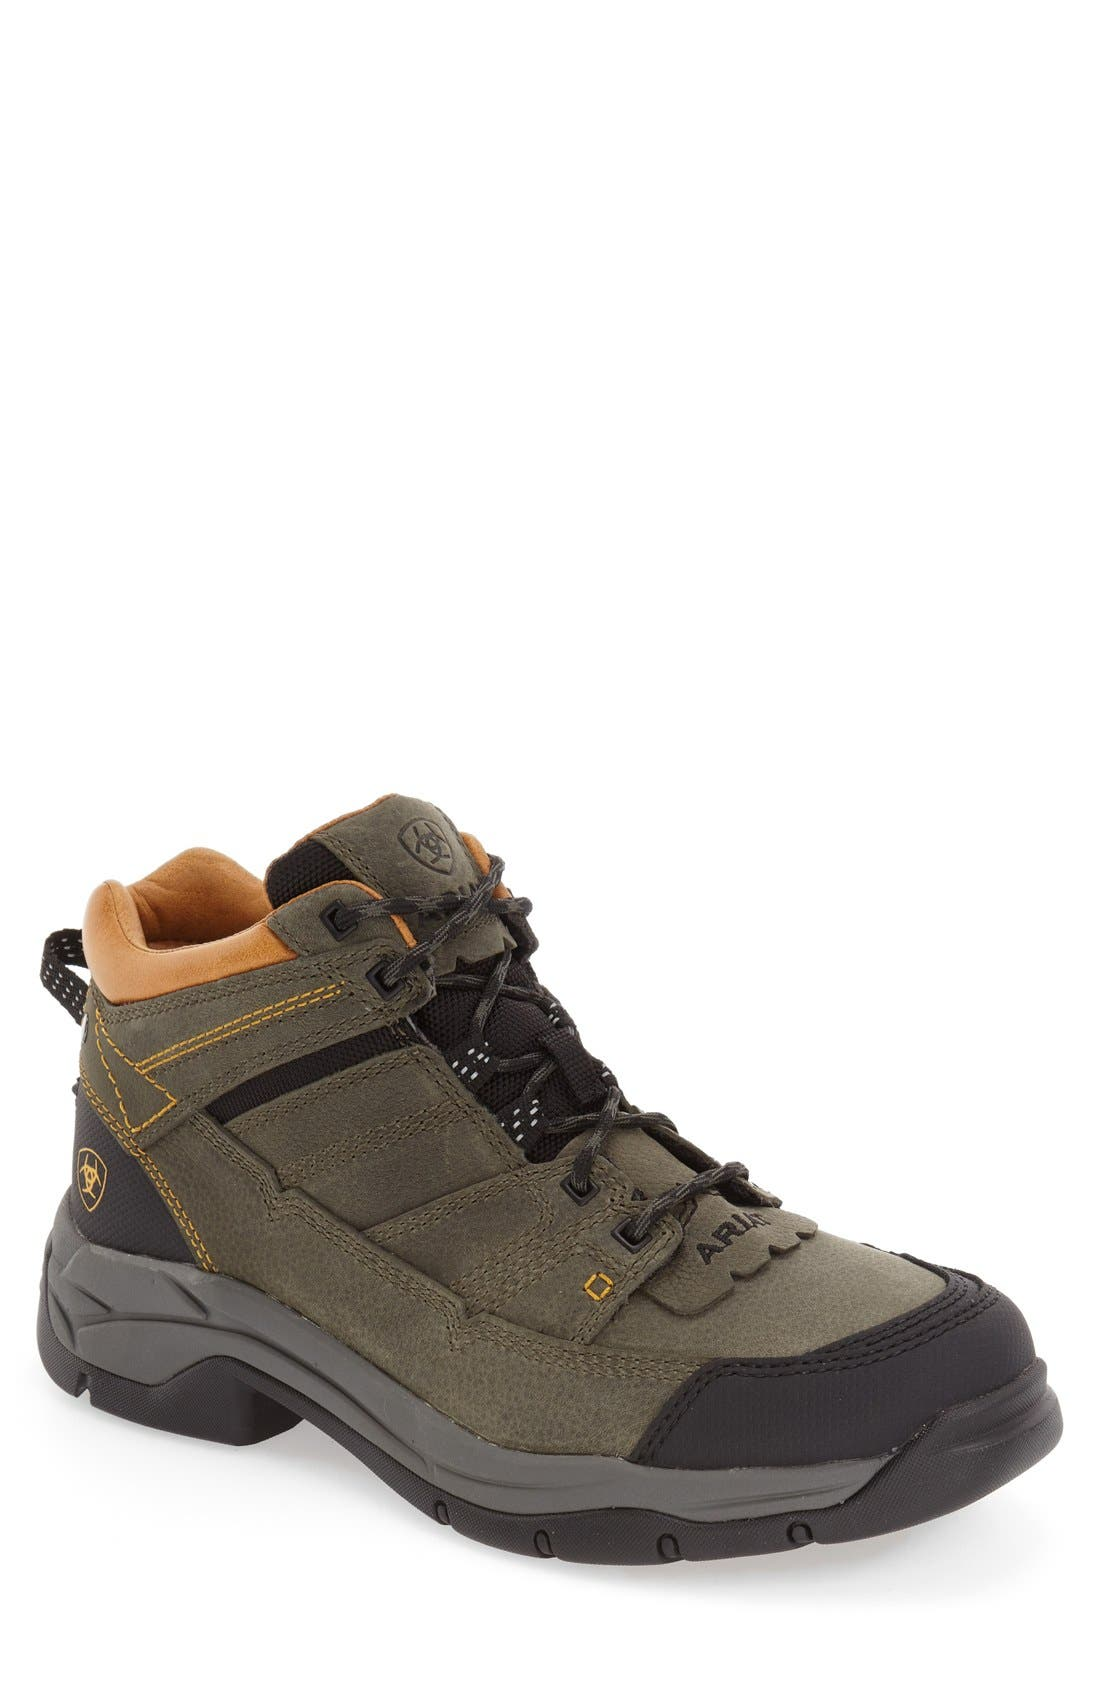 'Terrain Pro' Waterproof Hiking Boot,                             Main thumbnail 1, color,                             020